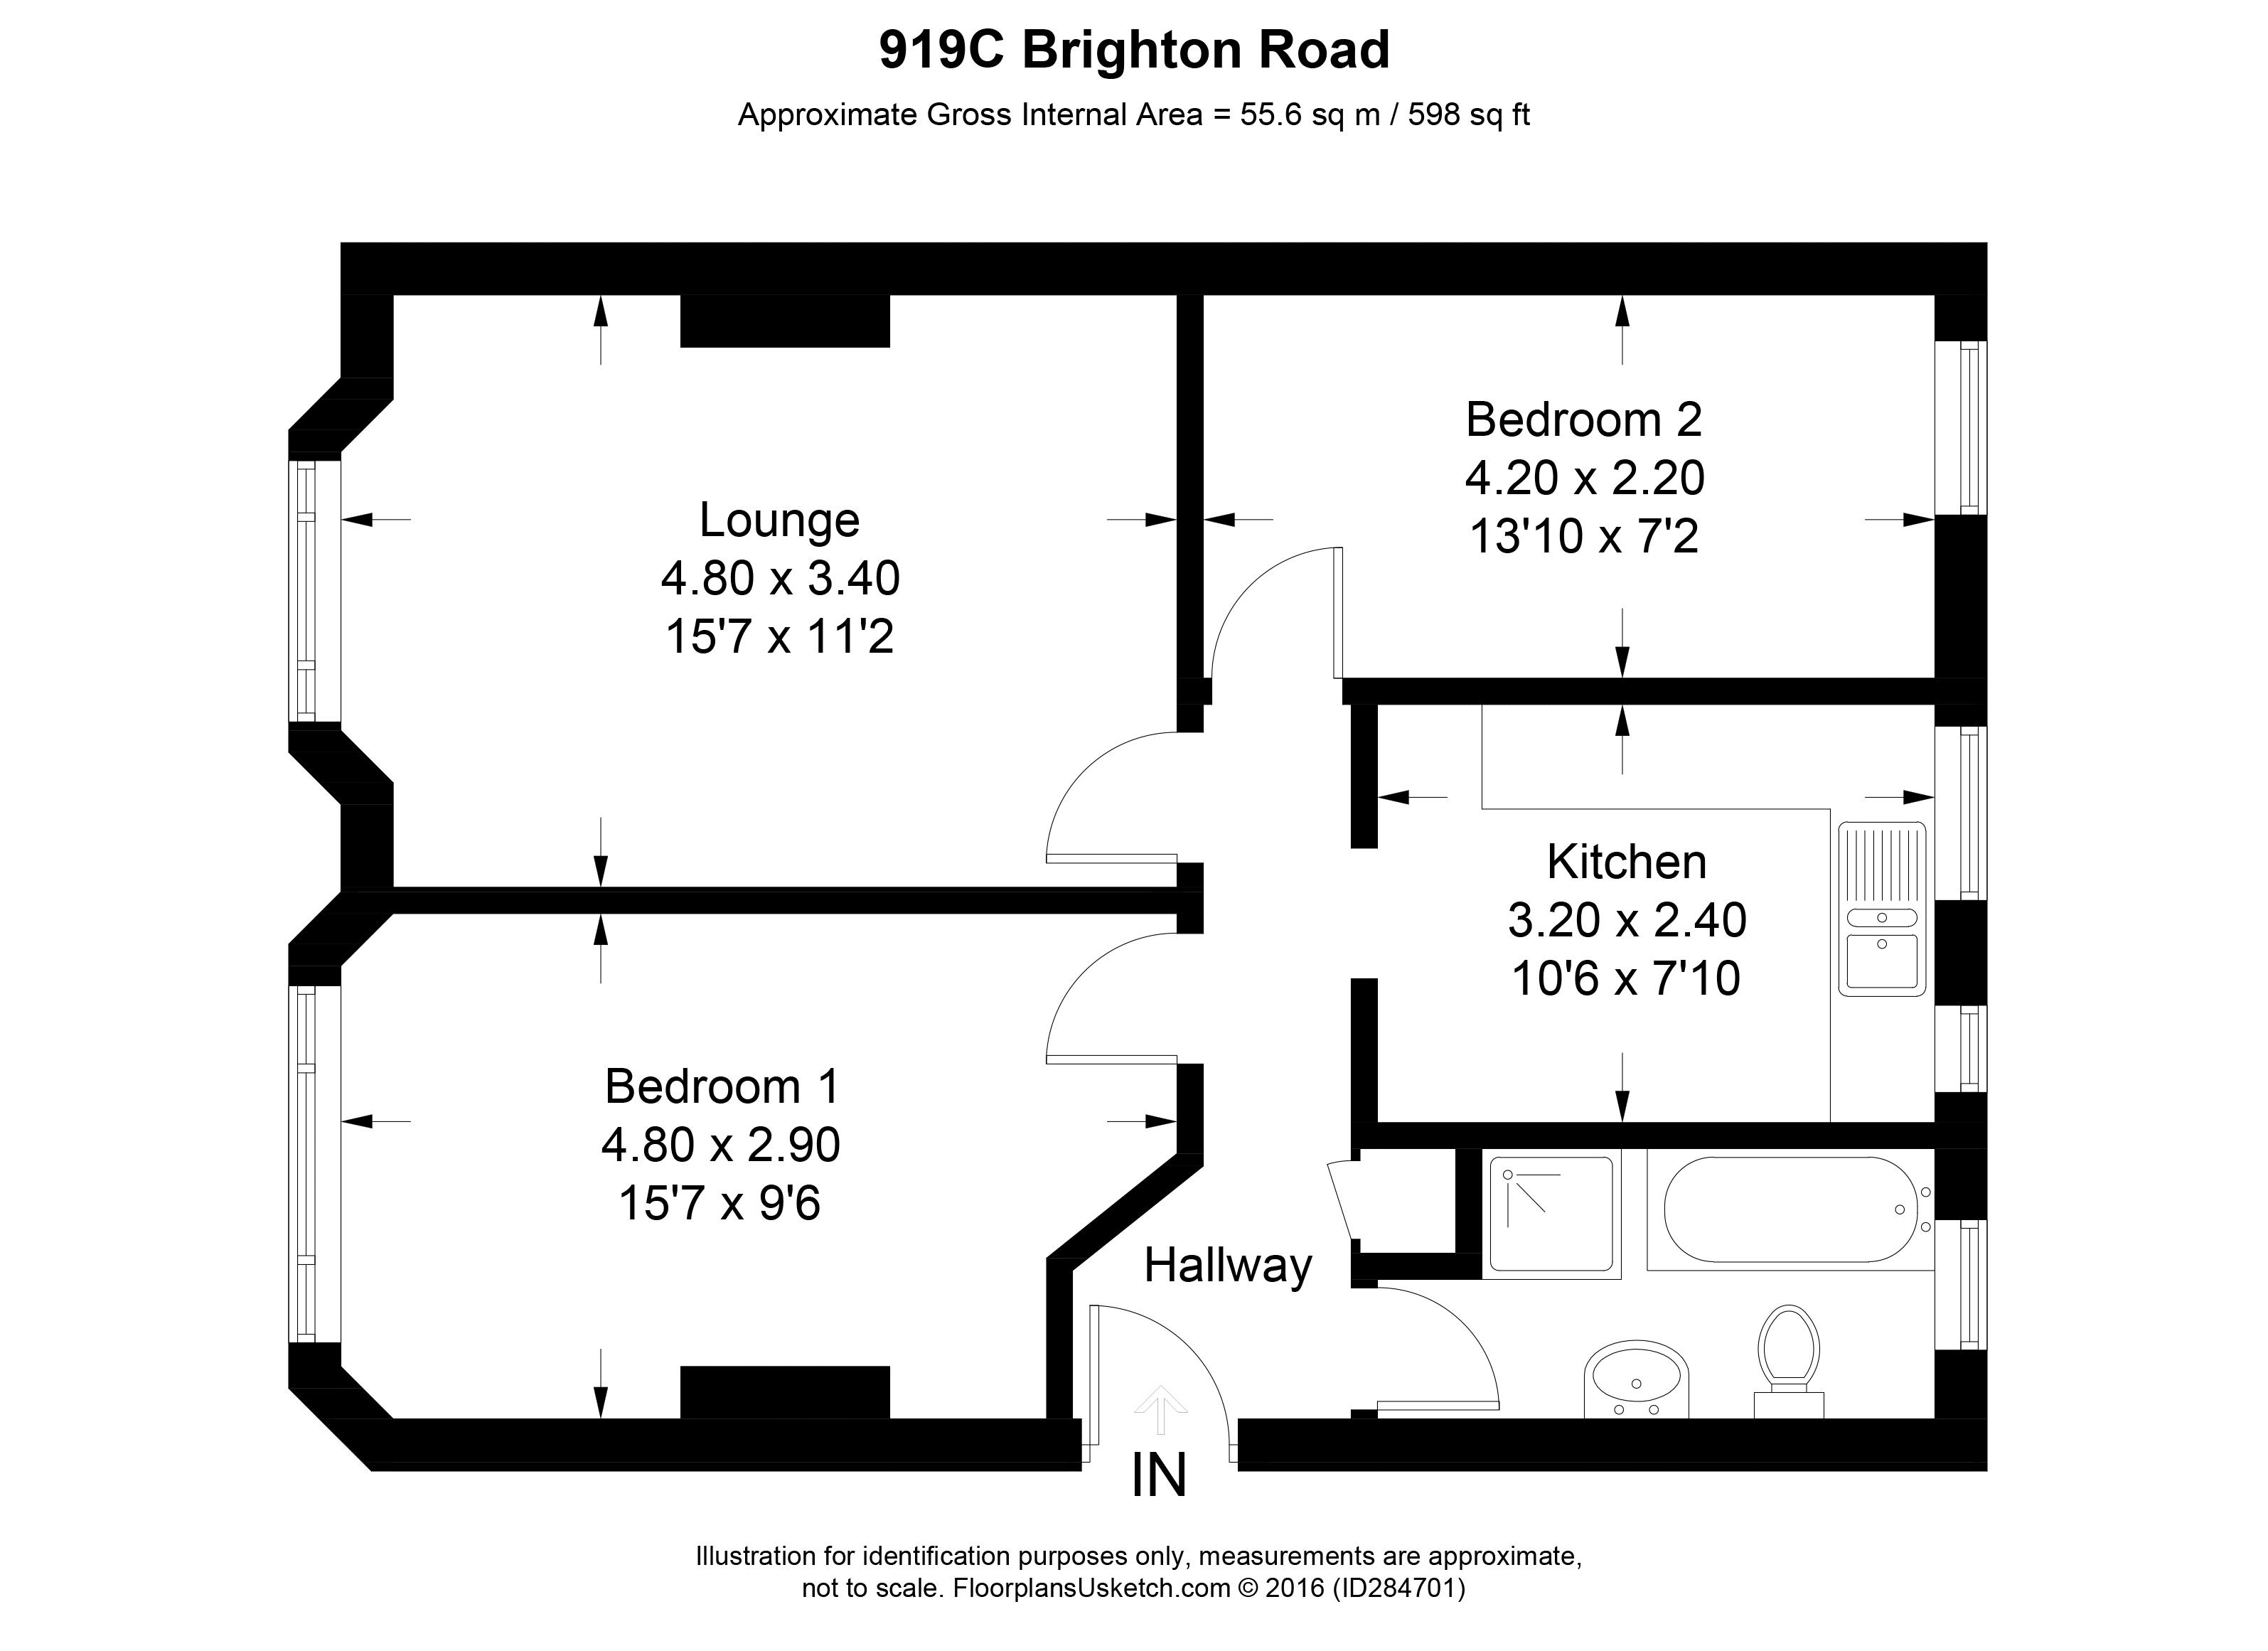 Brighton road purley cr8 2 bedroom flat to rent - 2 bedroom flats to rent in brighton ...